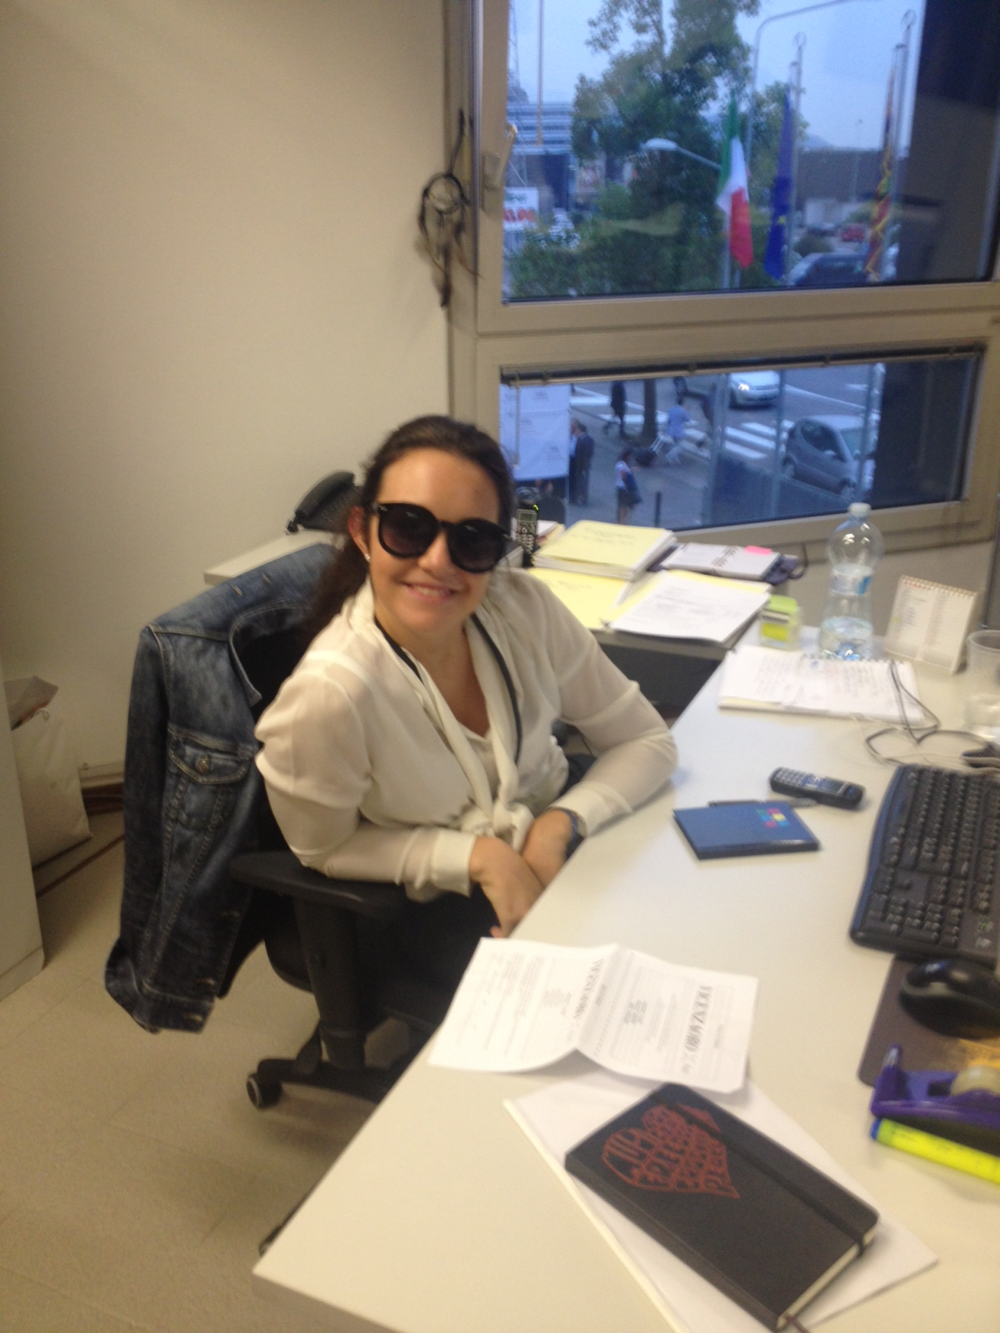 VO Buyers Coordinator, Beatrice Folco, at her desk.